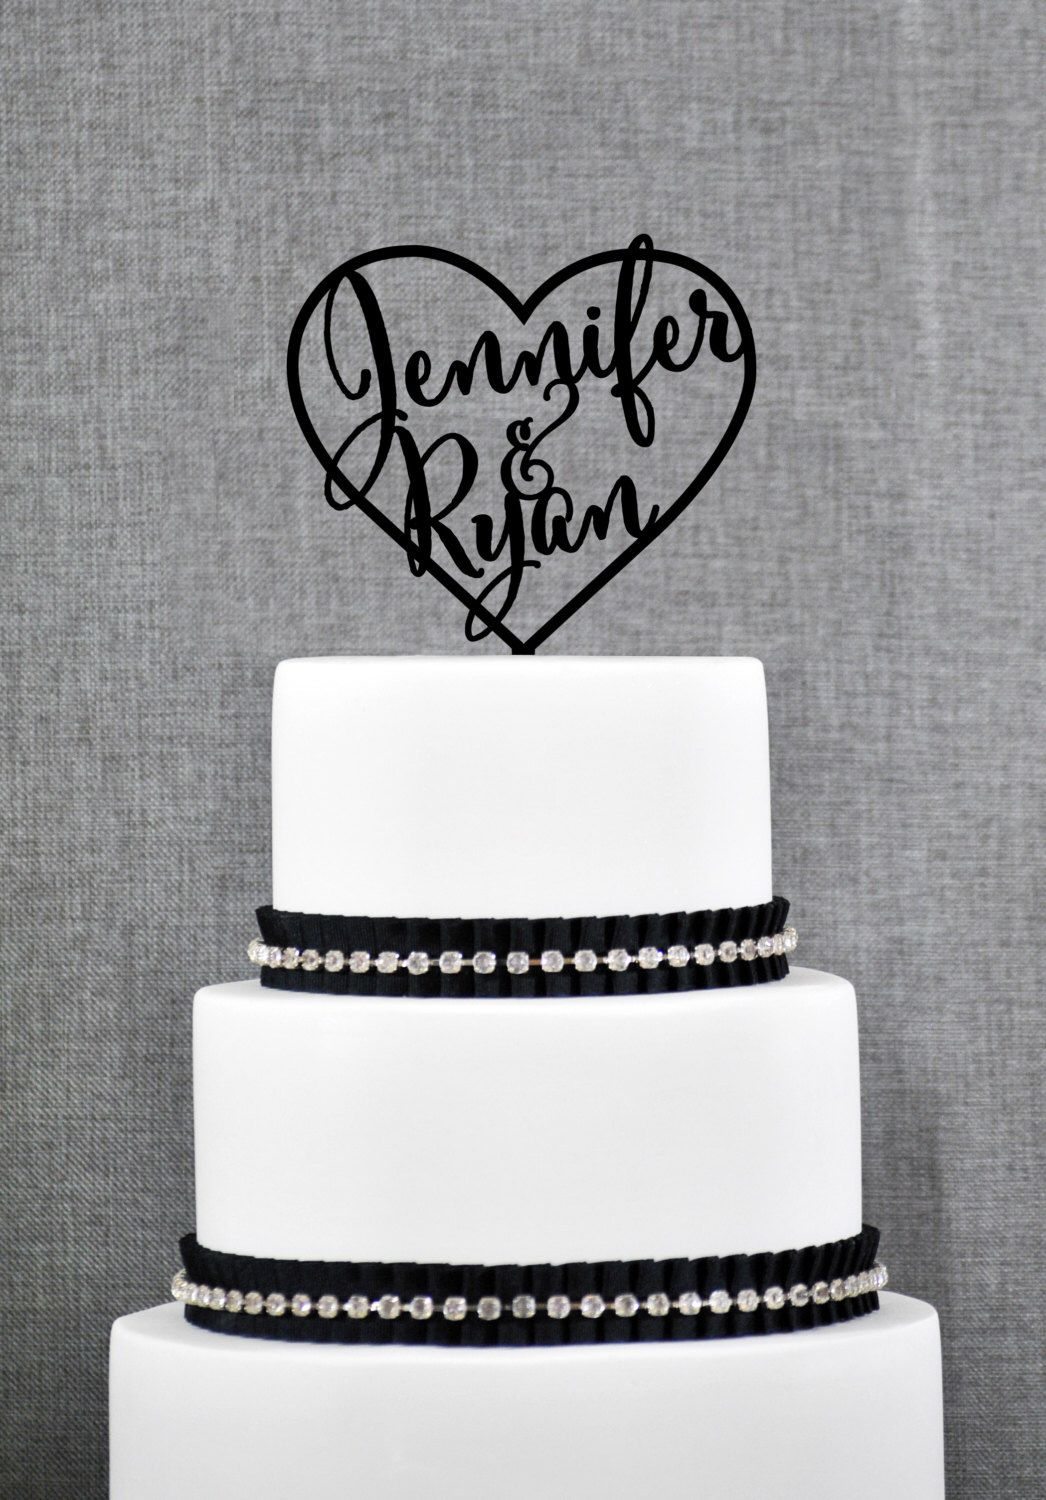 Wedding Cake Toppers with First Names Inside Heart, Personalized Cake Toppers, Elegant Custom Mr and Mrs Wedding Cake Toppers - (S009) by ChicagoFactory on Etsy https://www.etsy.com/listing/219862816/wedding-cake-toppers-with-first-names